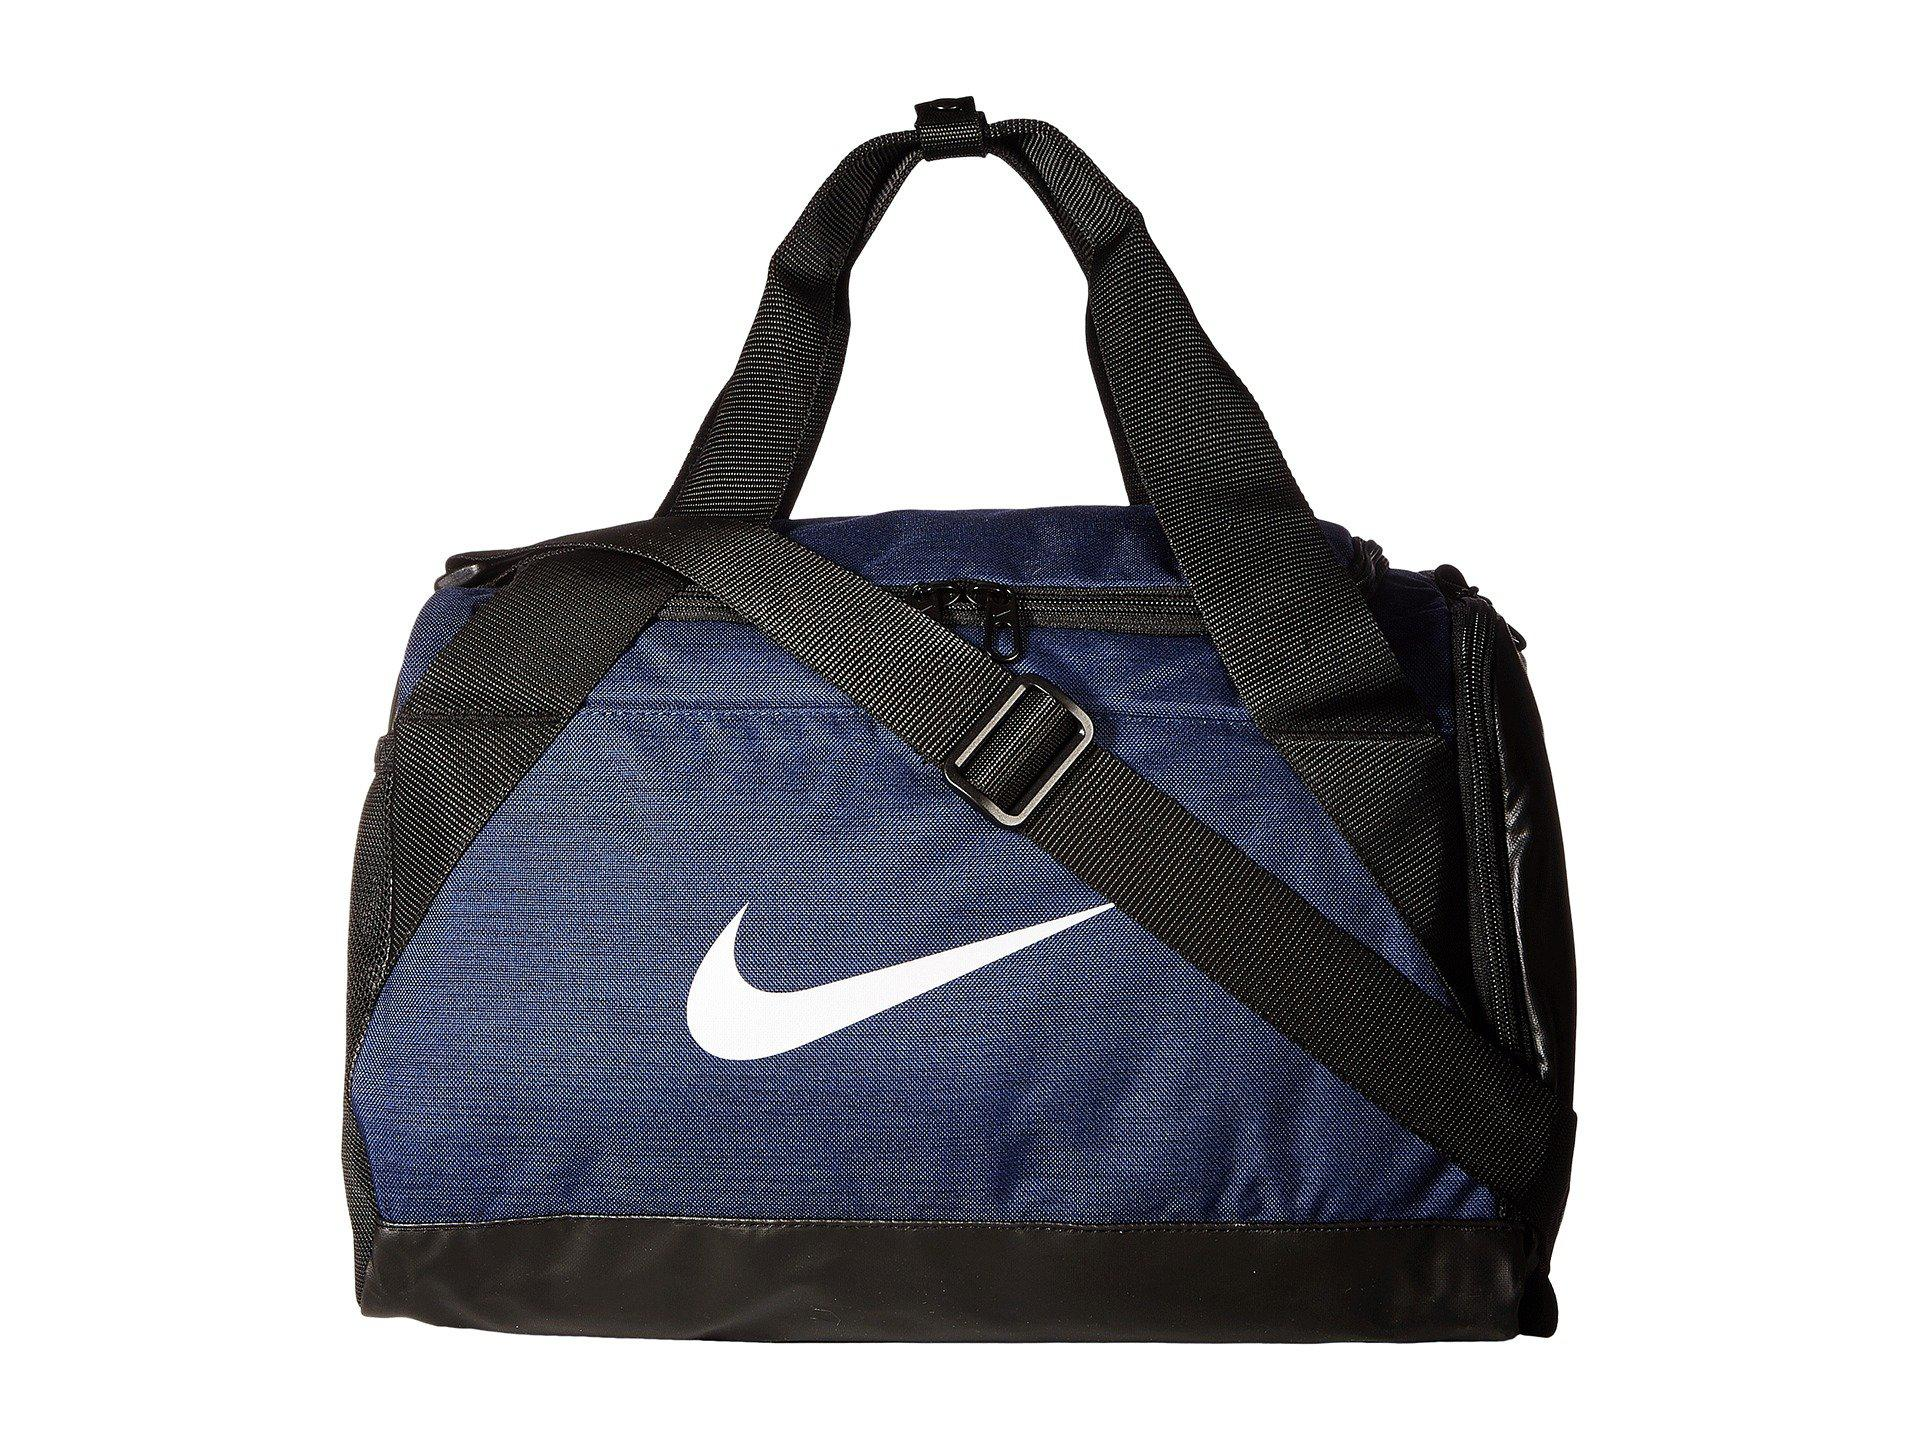 33f569a571cd Lyst - Nike Brasilia Small Duffel Bag (flint Grey black white ...